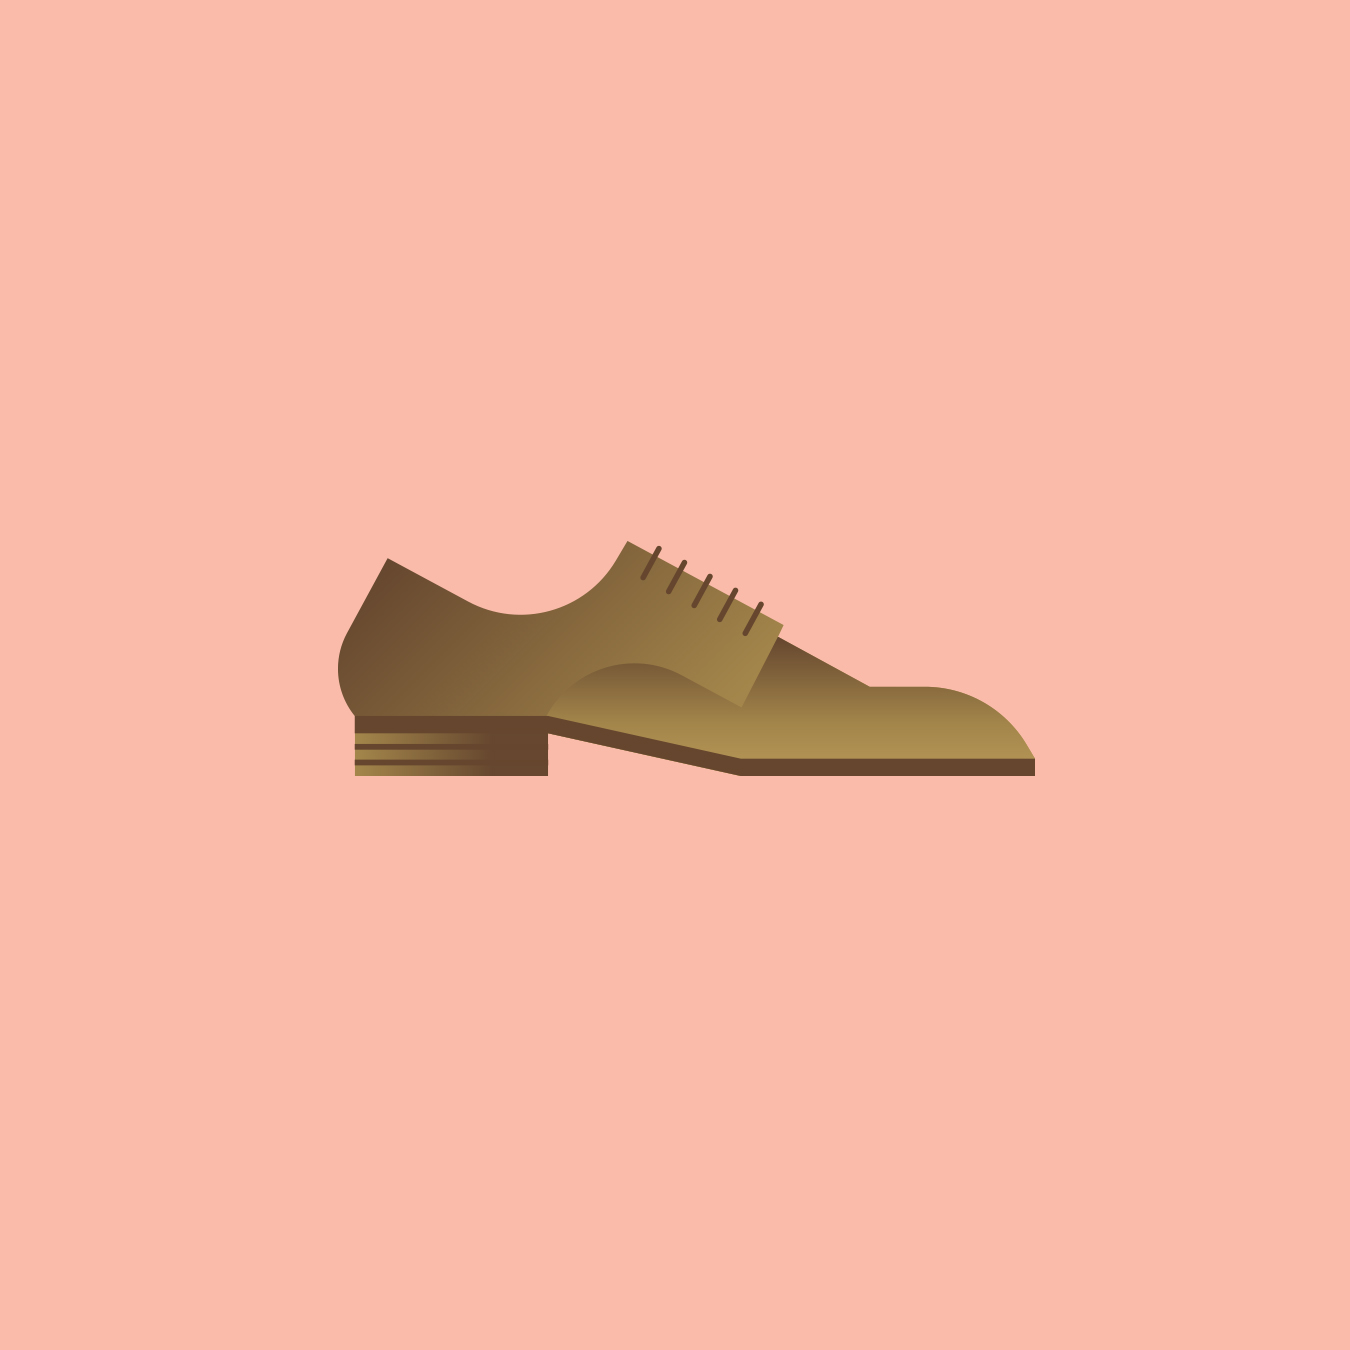 Groom Shoe Illustration